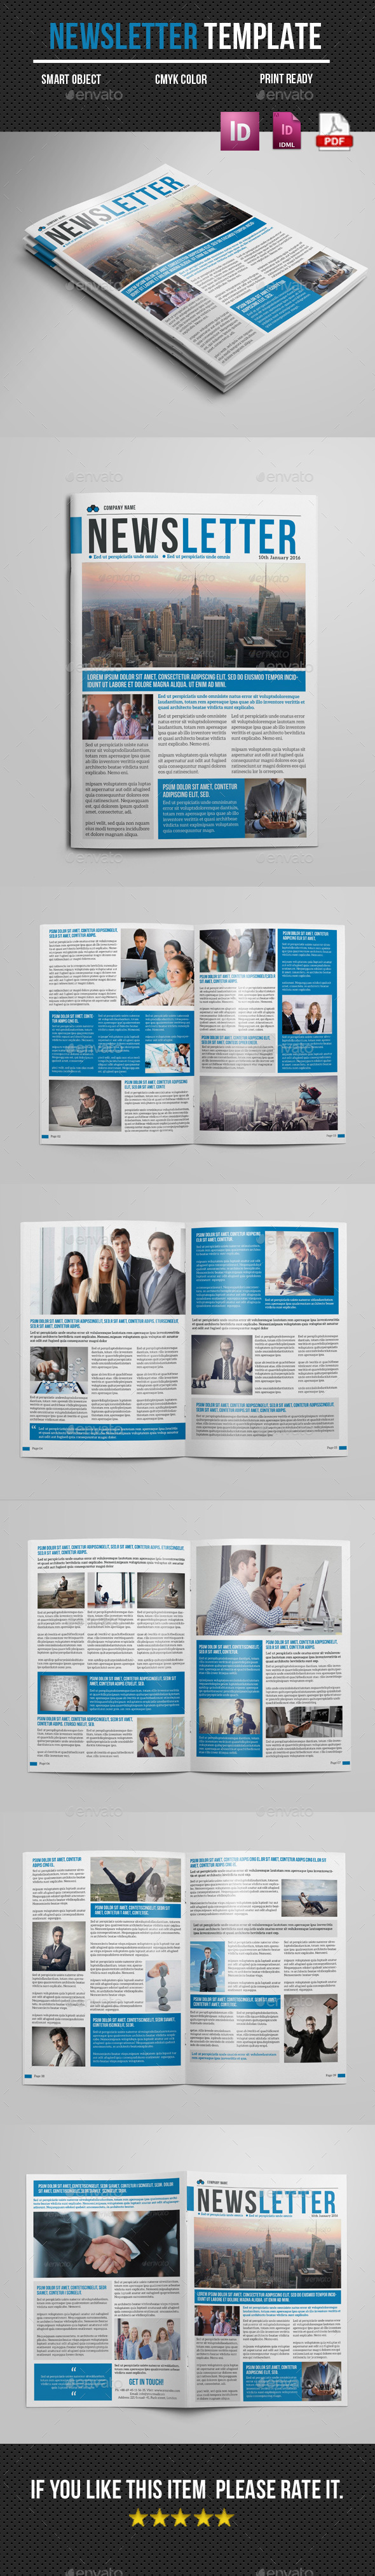 Newsletter Indesign Template - Newsletters Print Templates